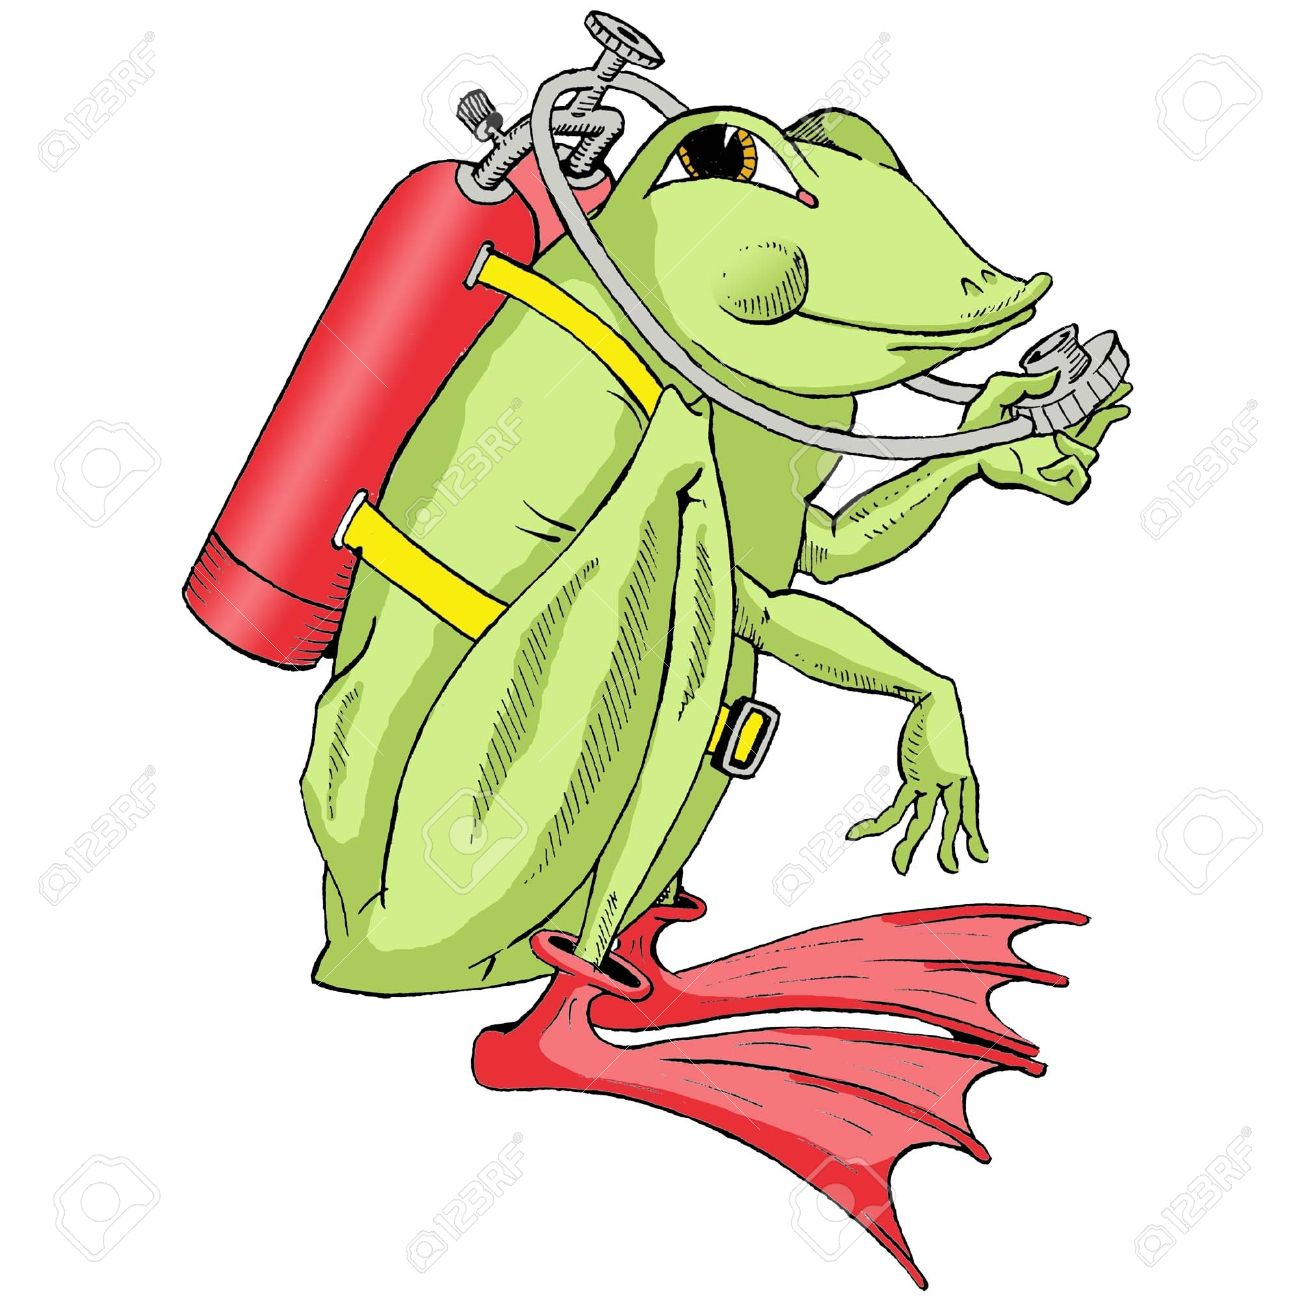 Frogman Royalty Free Cliparts, Vectors, And Stock Illustration.